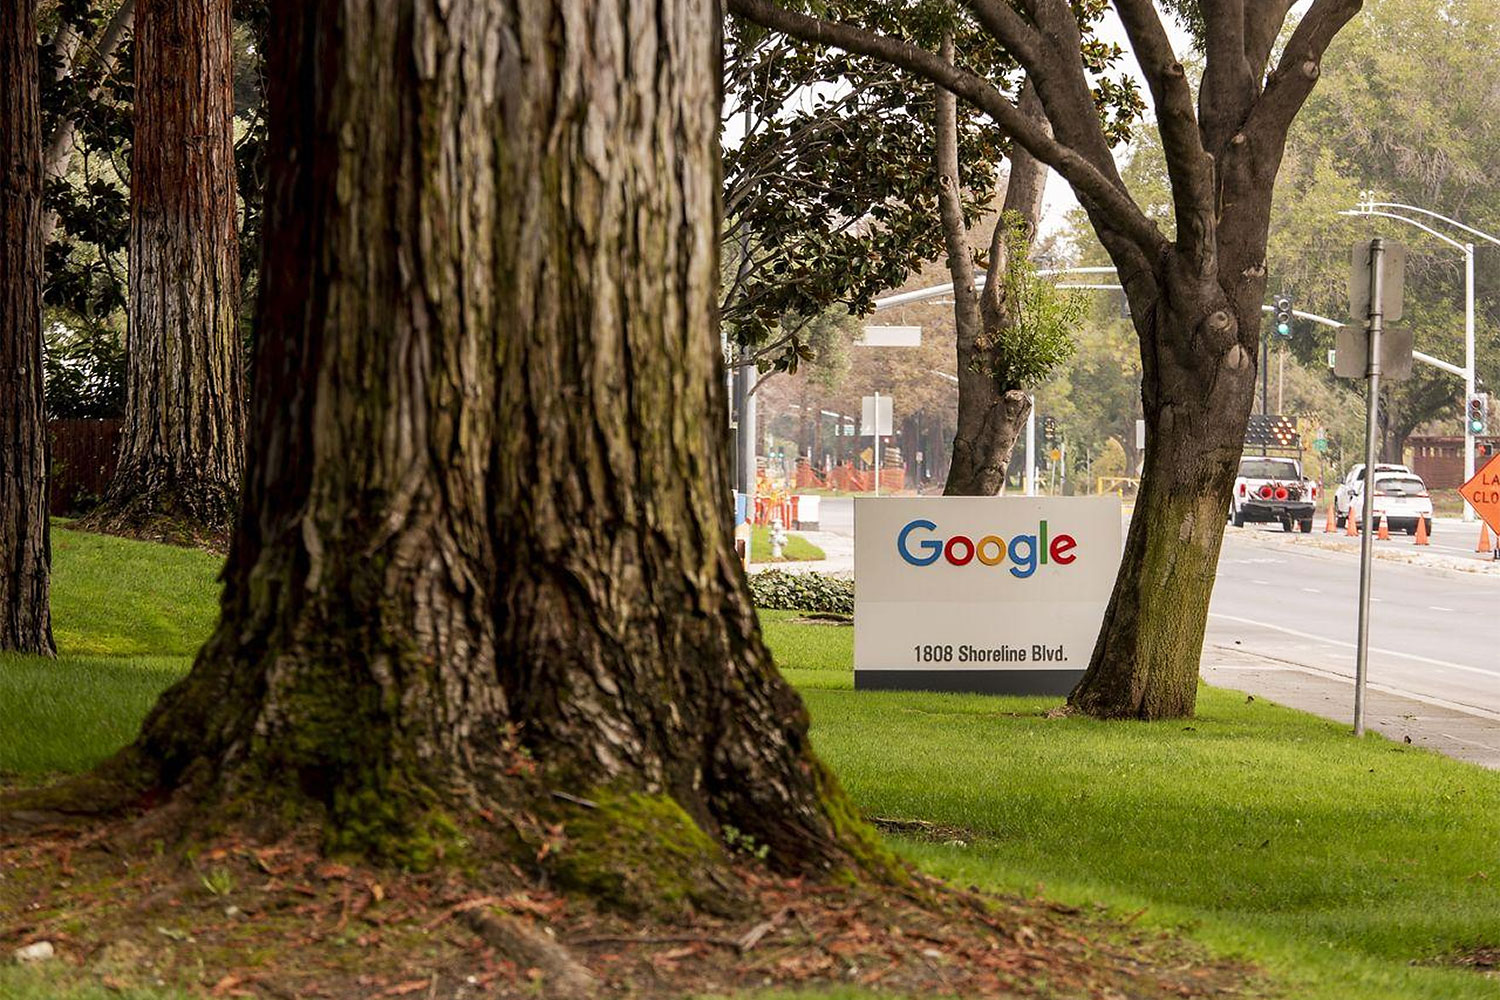 Many of Google's longtime adversaries say the Justice Department's antitrust lawsuit doesn't go far enough.